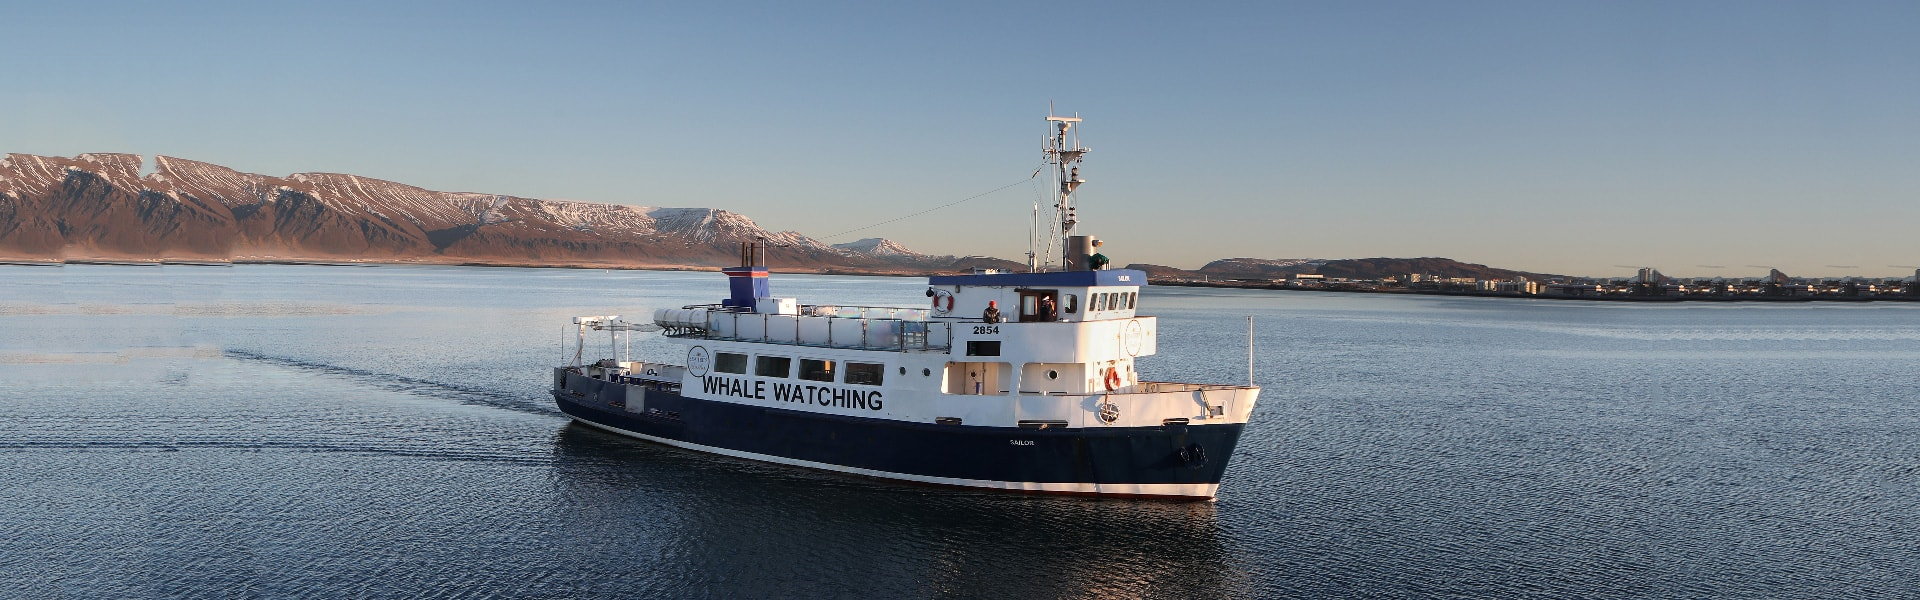 image of the boat Sailor, used for whale watching from Reykjavik in Iceland